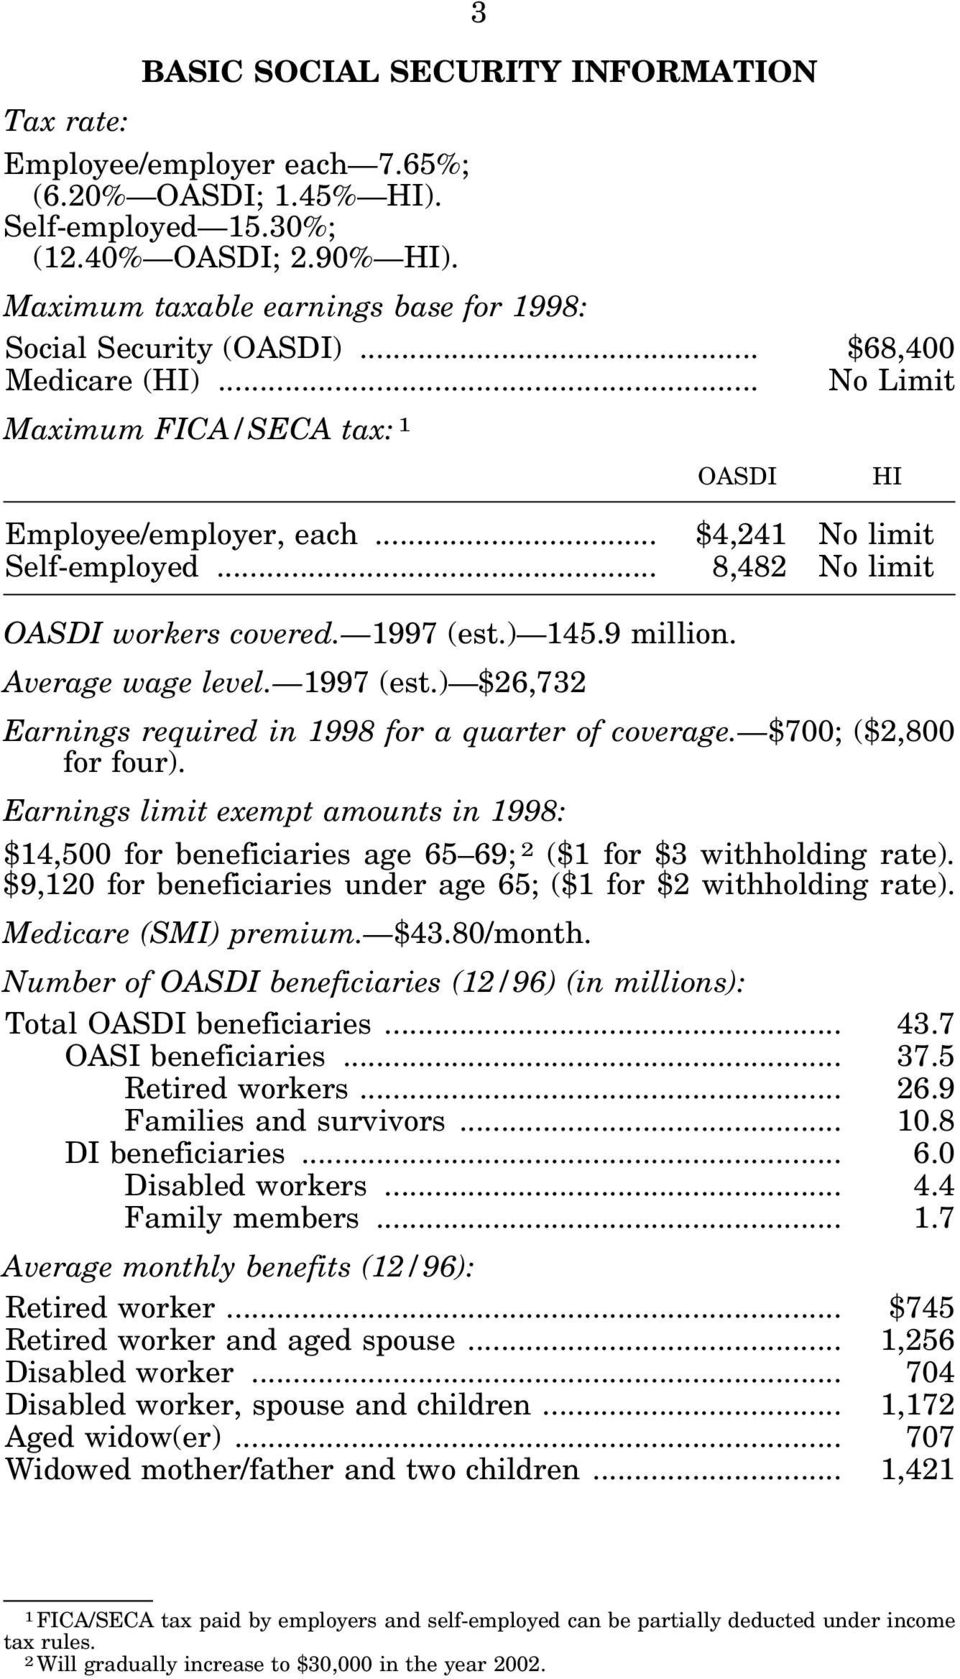 1997 (est.) 145.9 million. Average wage level. 1997 (est.) $26,732 Earnings required in 1998 for a quarter of coverage. $700; ($2,800 for four).